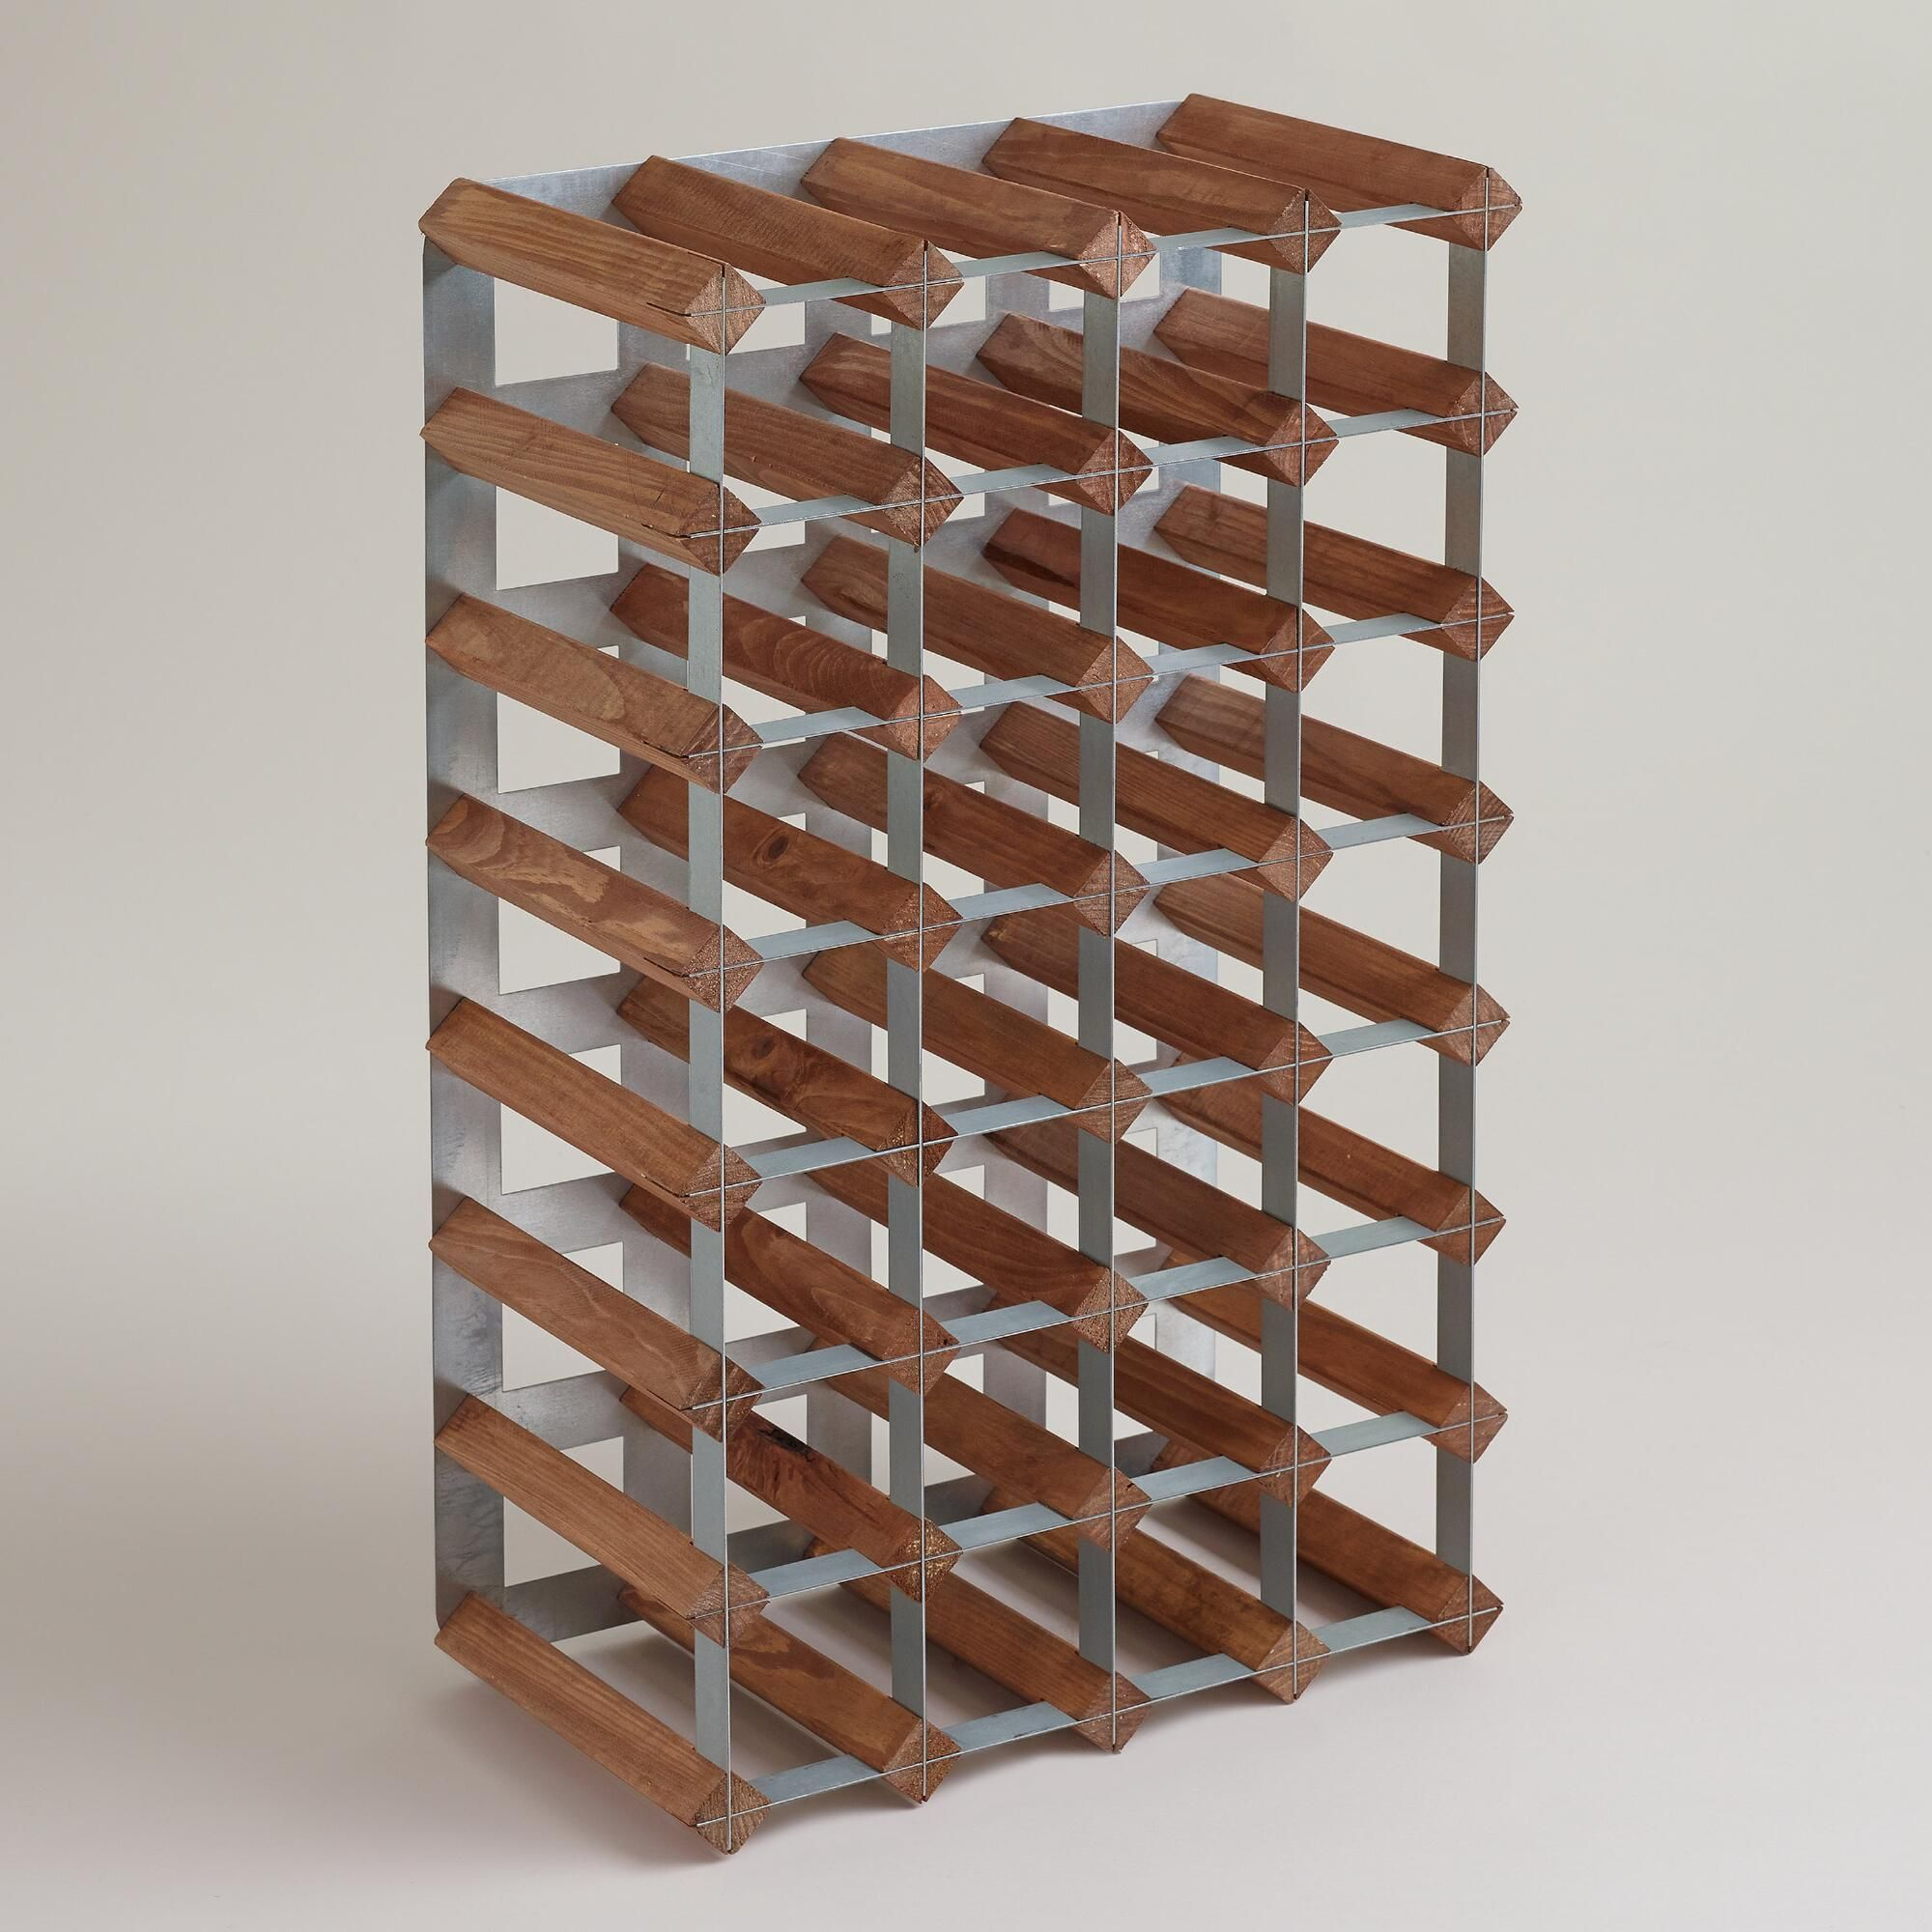 target wine racks small metal mounted considerations order wall rack and with choices